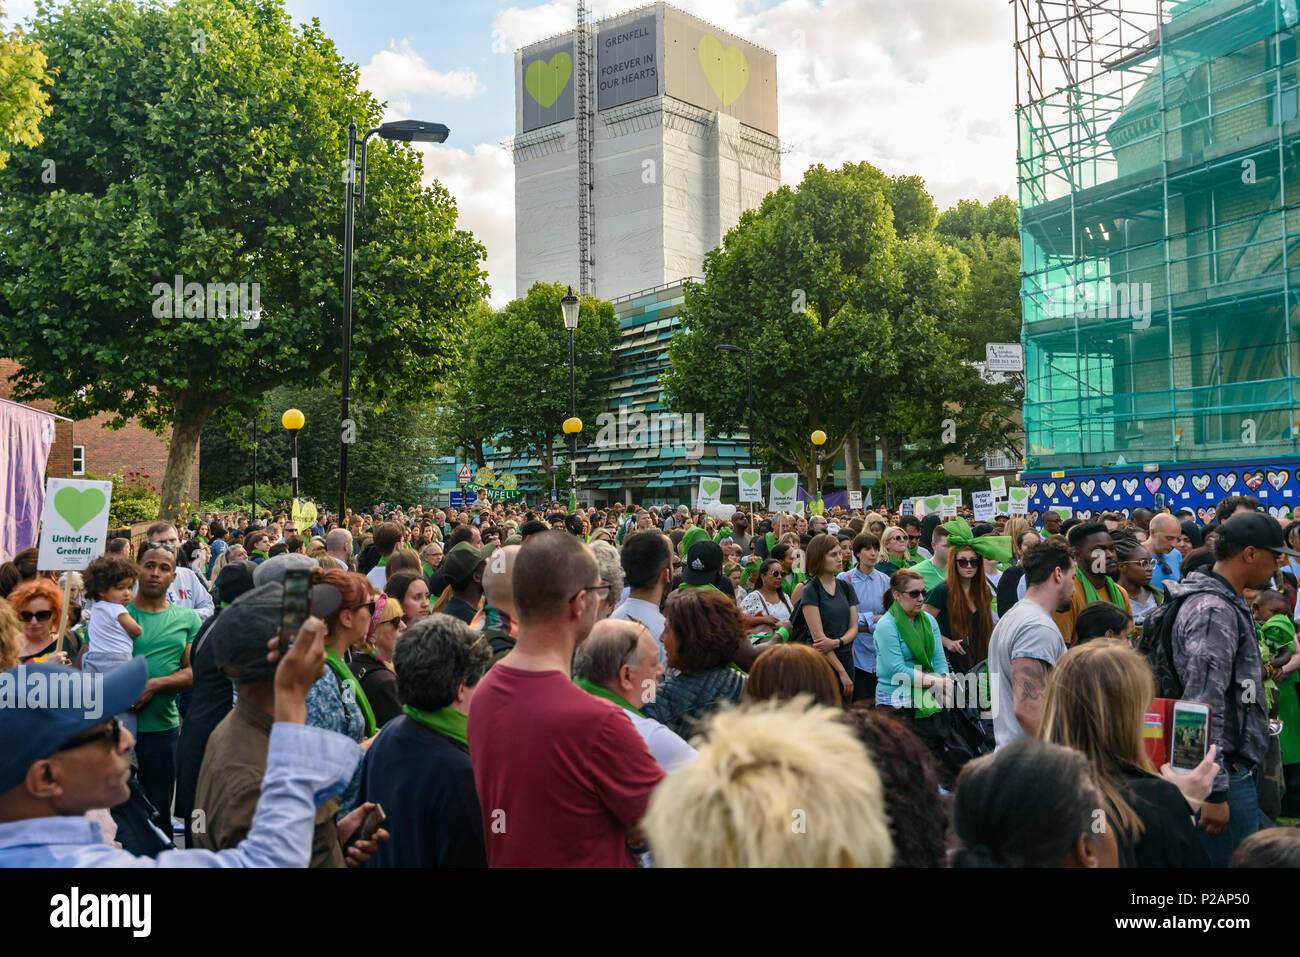 London, UK. 14th June 2018. Thousands walk in silence from close to Grenfell Tower remembering the victims of the disaster on the first anniversary of the disastrous fire which killed 72 and left survivors traumatised. Many of those made homeless by the fire are still in temporary accomodation a year later despite promises mde by Theresa May and Kensington & Chelsea council, who many fell have failed the local community both before and after the fire.  call for justice and for those responsible to be prosecute Credit: Peter Marshall/Alamy Live News - Stock Image